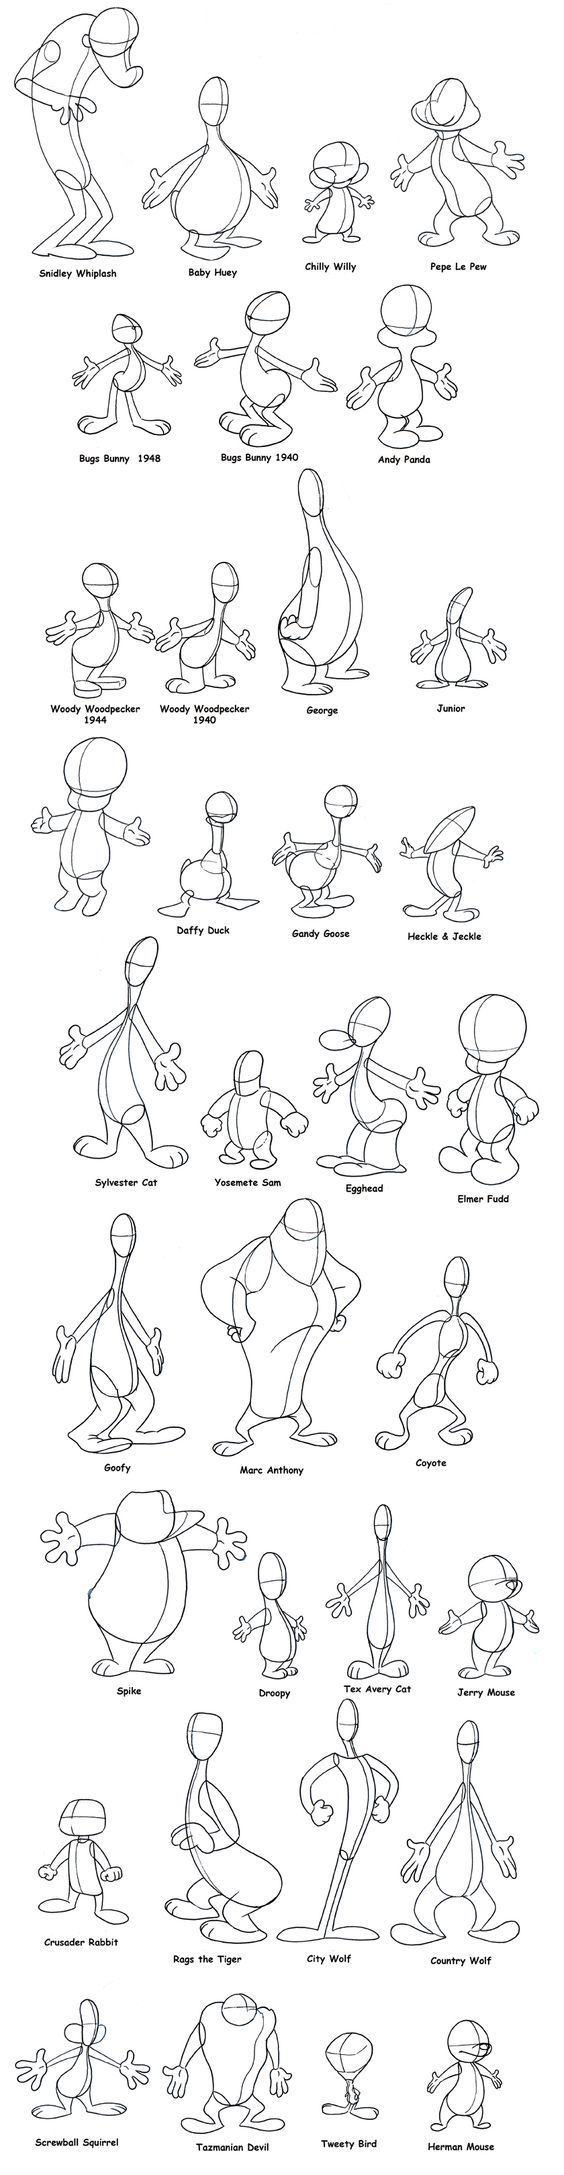 Basic Character Design Tips : Best action poses gesture drawing images on pinterest